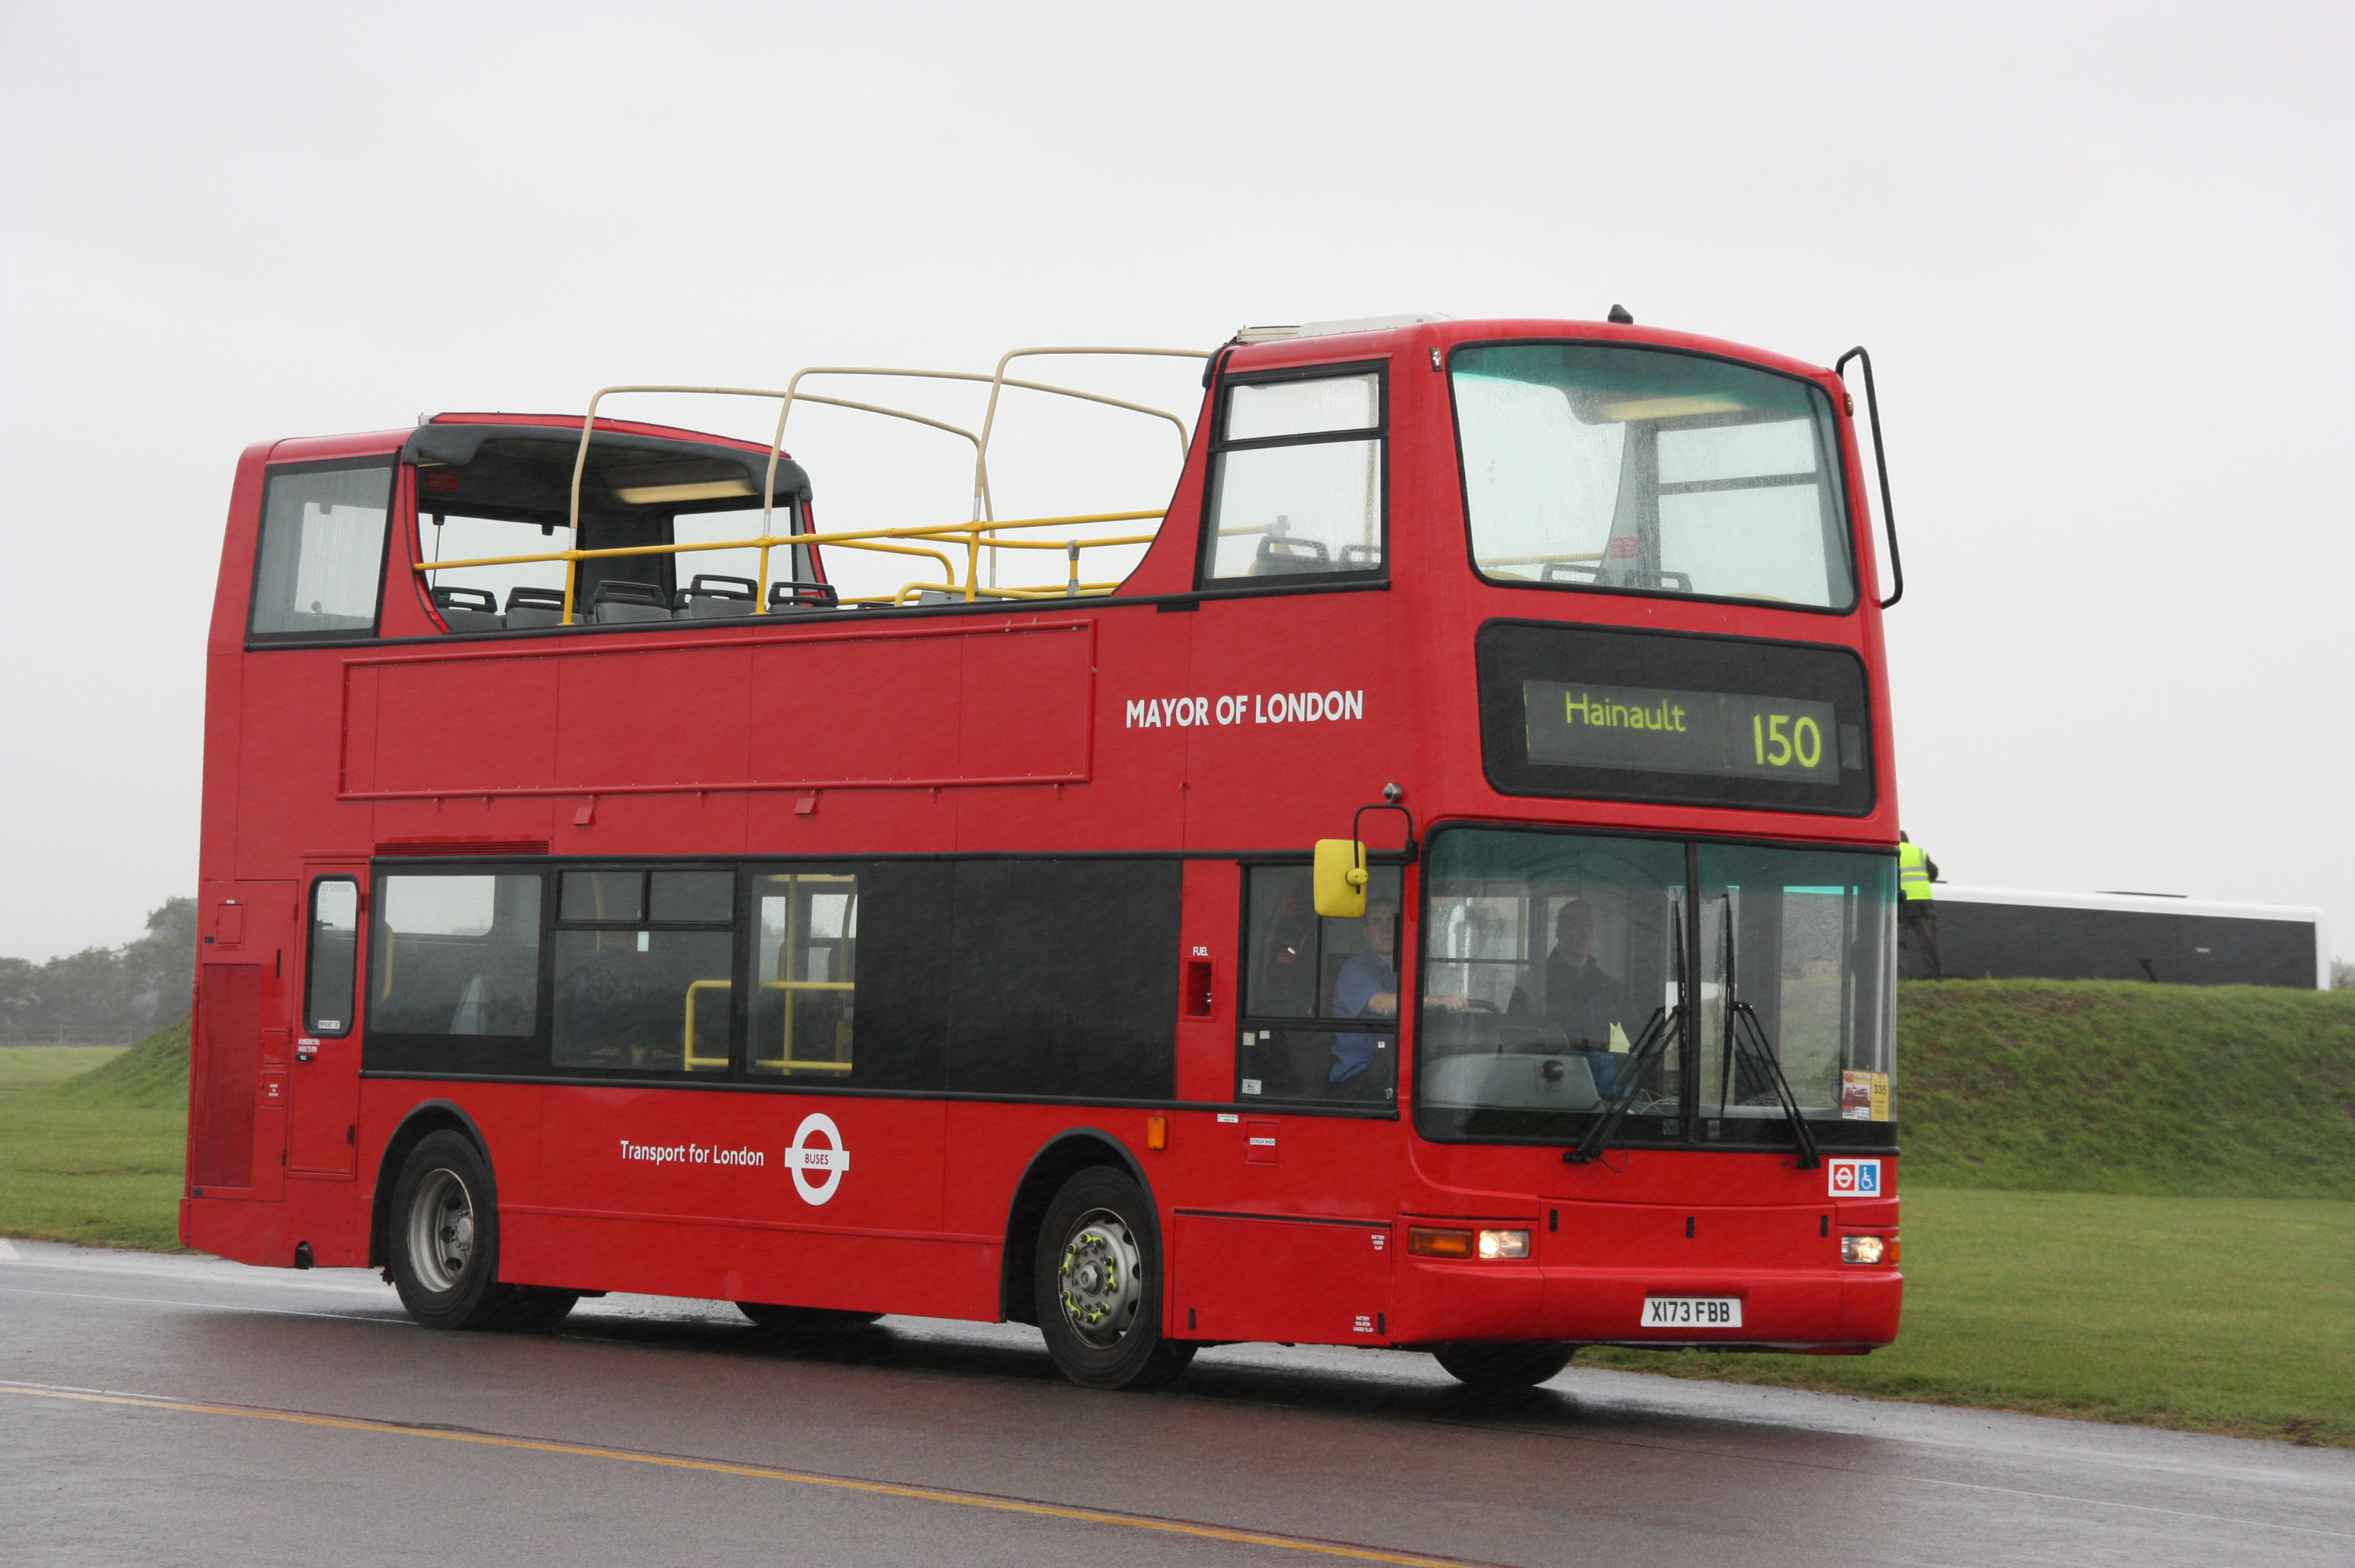 Mayor of London Volvo B7TL Plaxton President